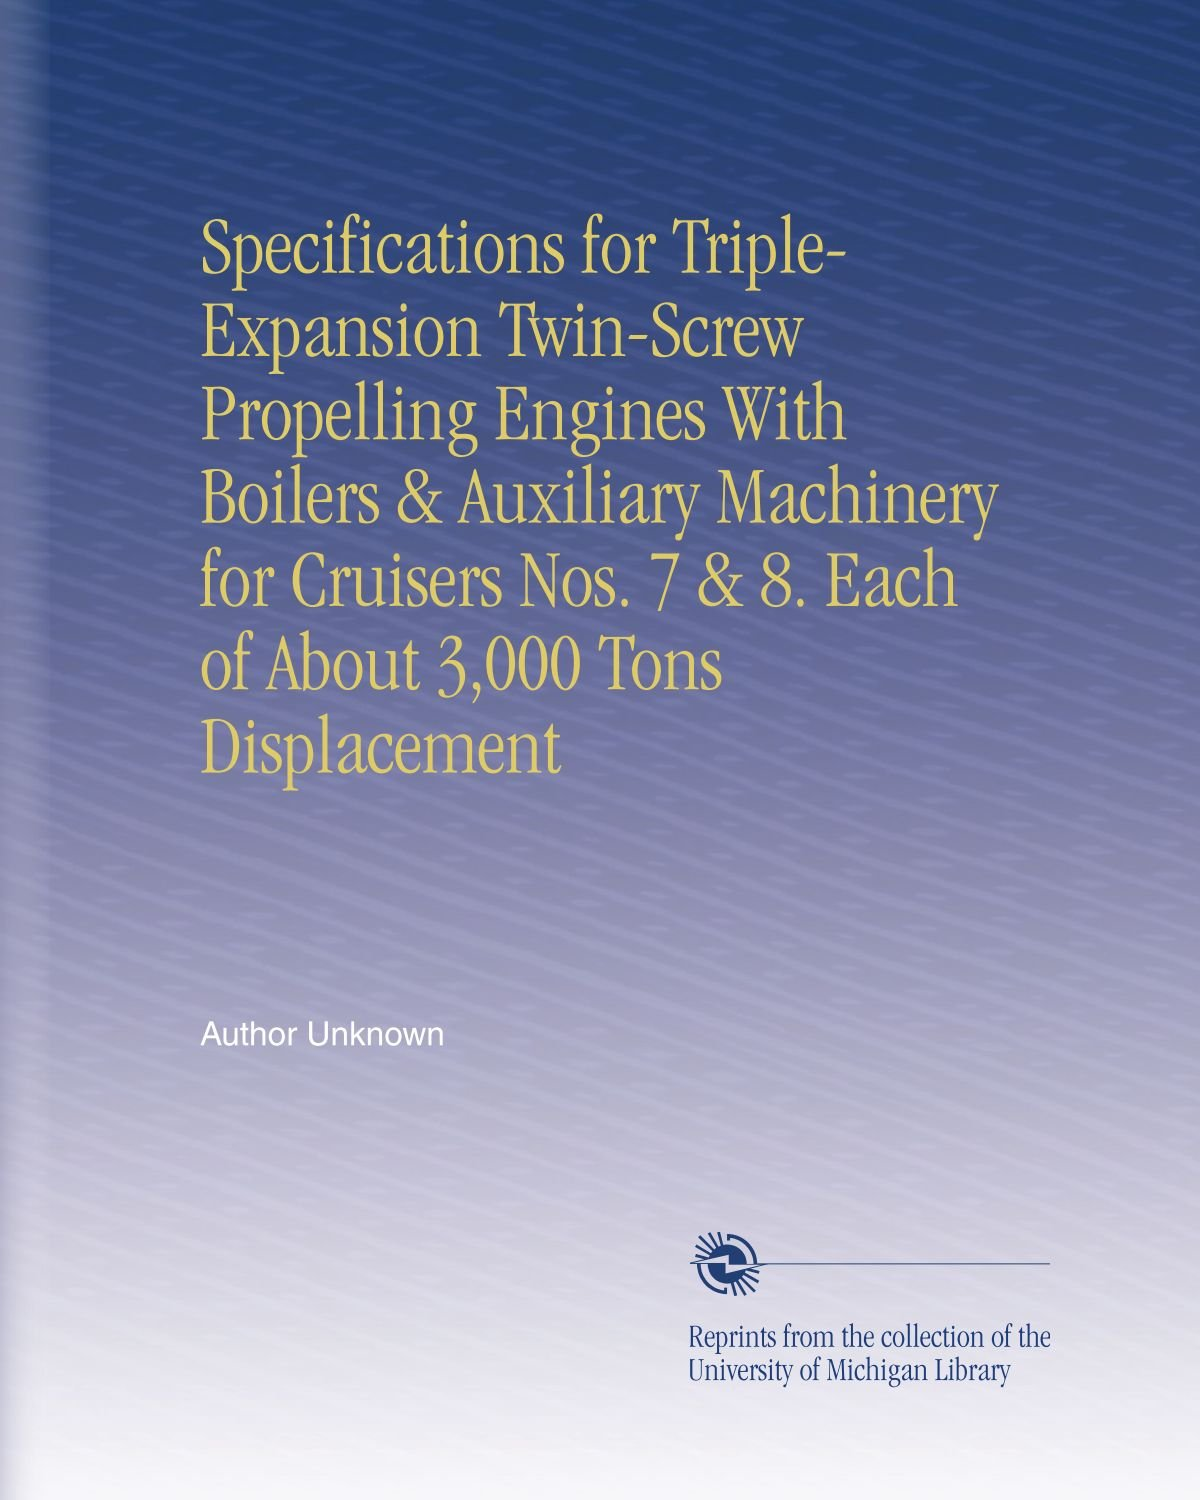 Read Online Specifications for Triple-Expansion Twin-Screw Propelling Engines With Boilers & Auxiliary Machinery for Cruisers Nos. 7 & 8. Each of About 3,000 Tons Displacement pdf